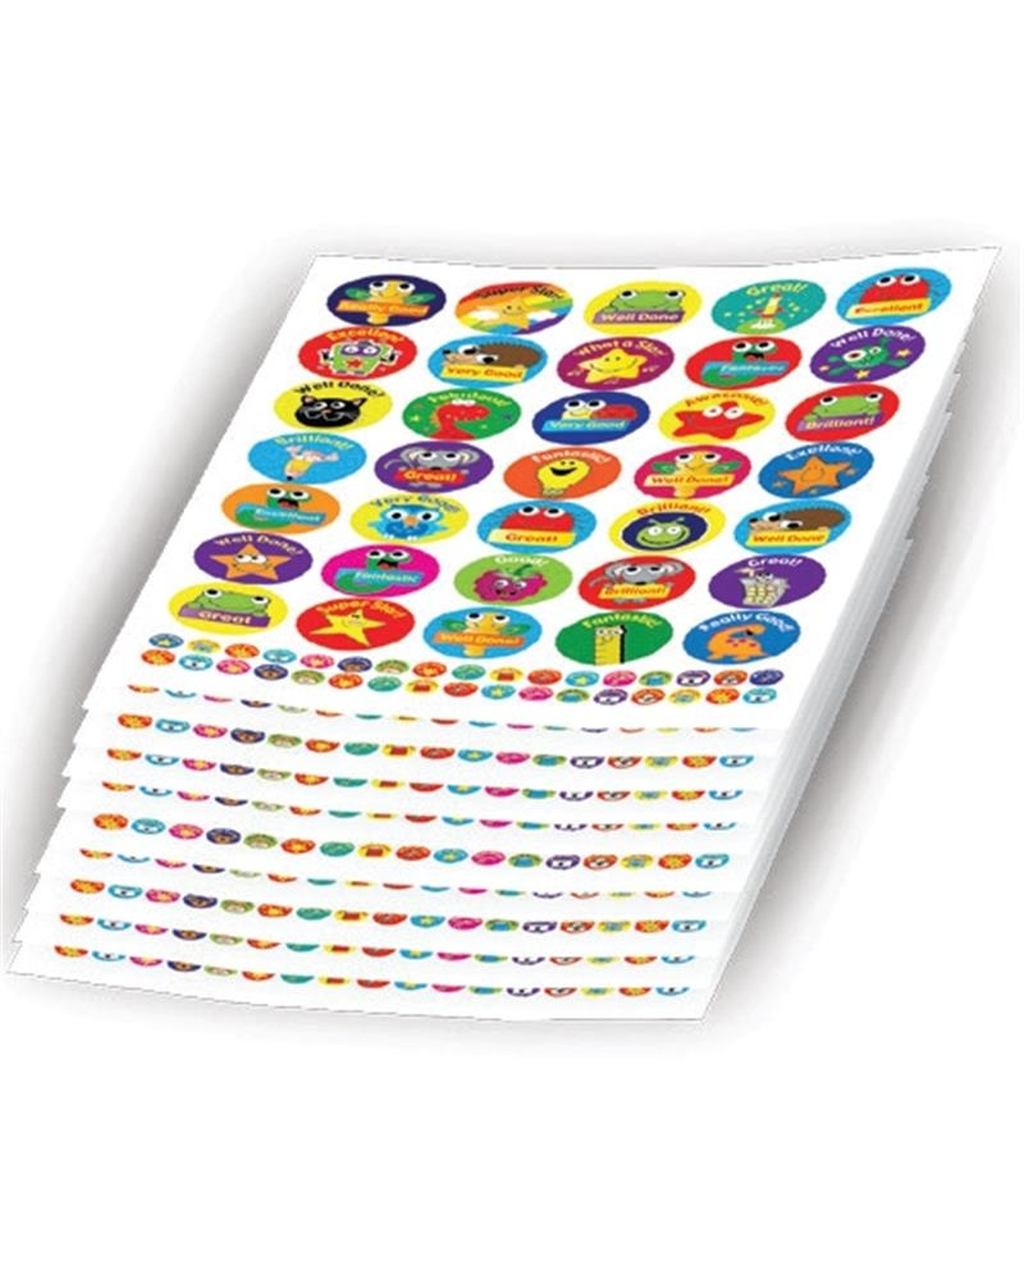 Bulk pack of Animals, Stars and Gadget Bumper -  3450 stickers